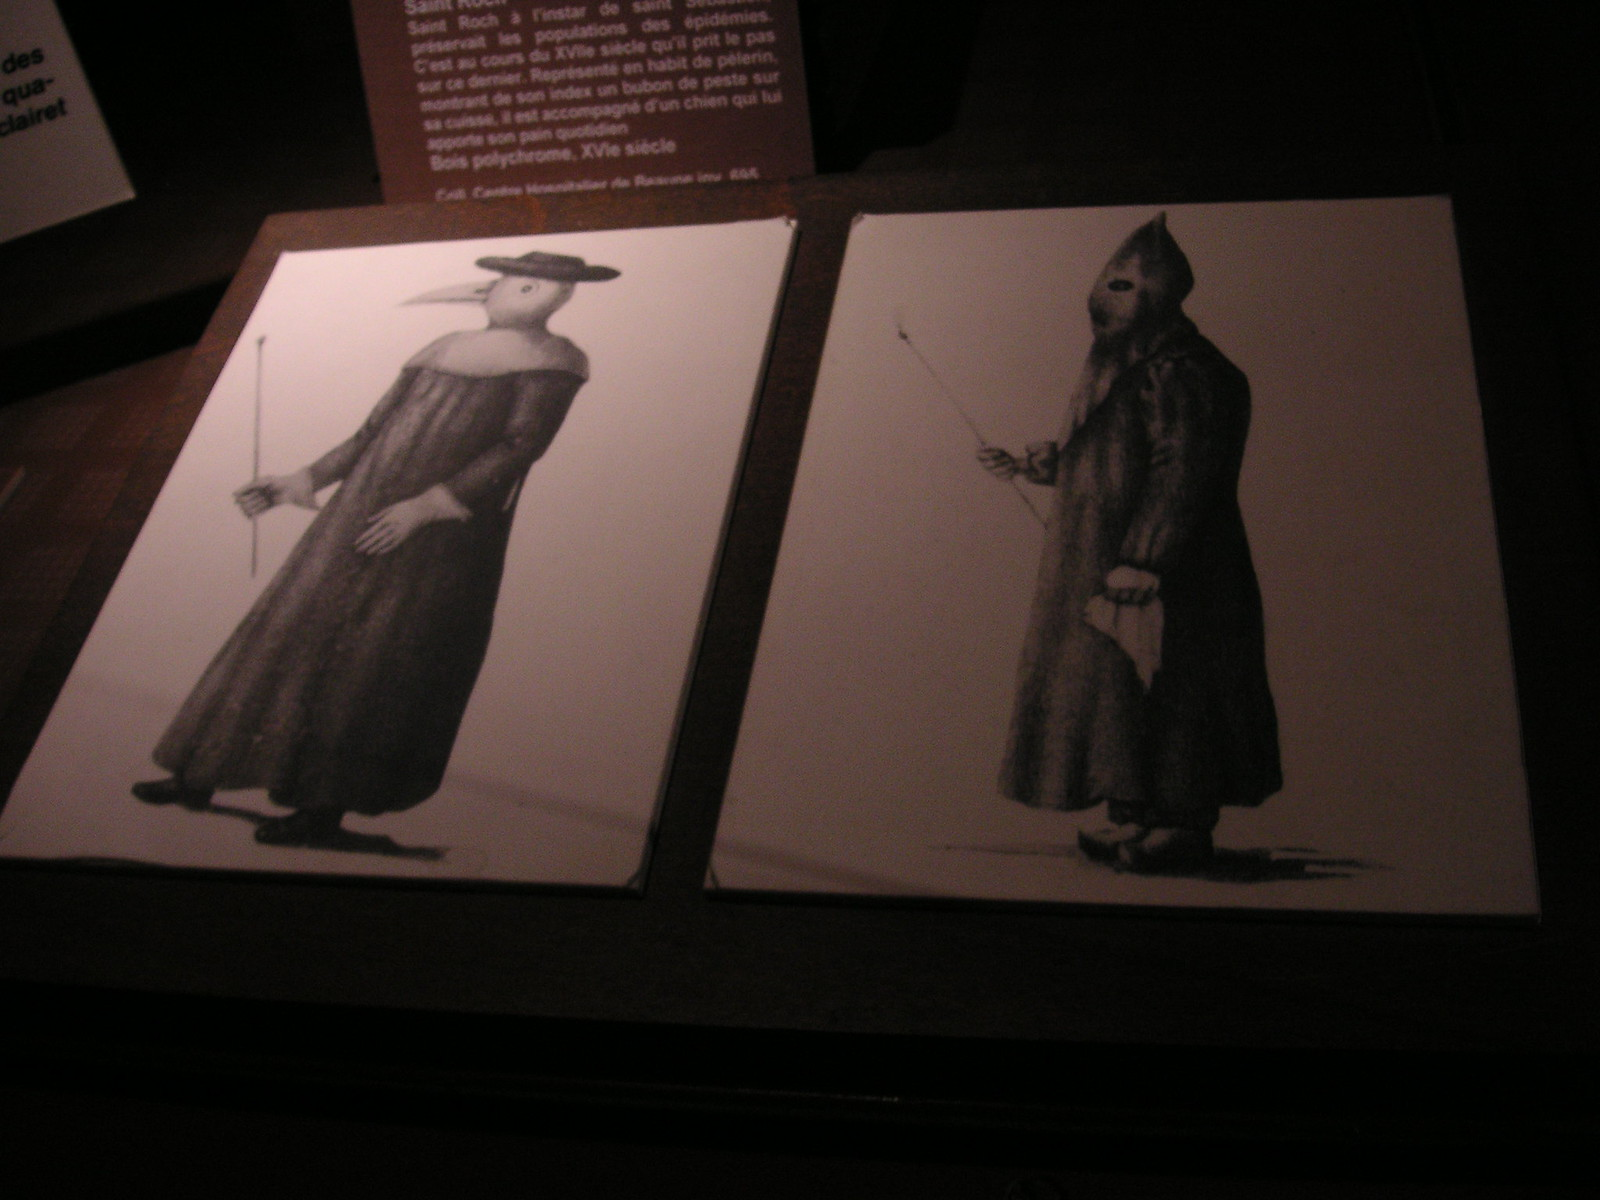 what doctors wore during the plague era